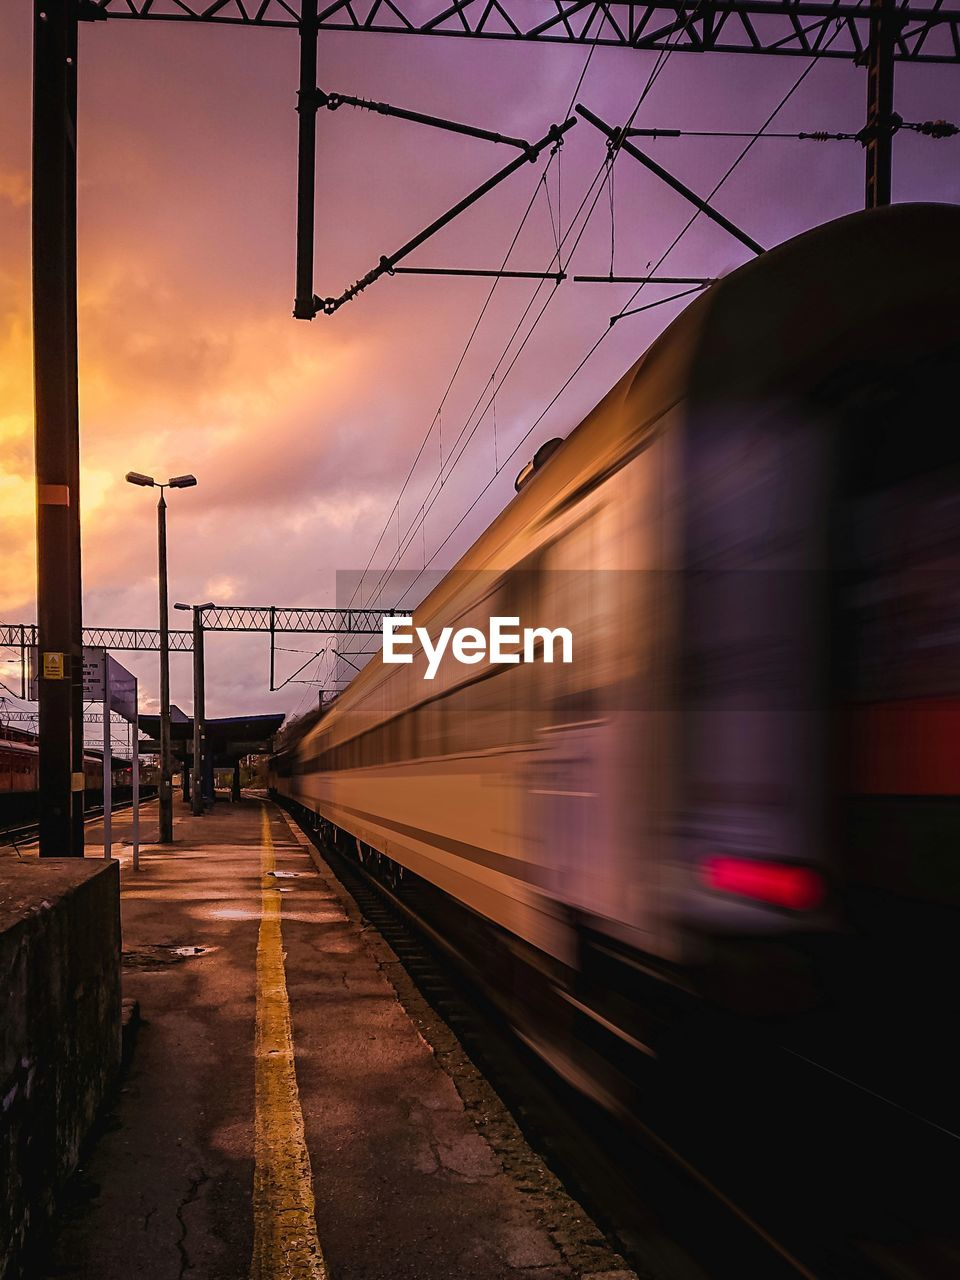 Blurred Motion Of Train At Railroad Station Against Sky During Sunset